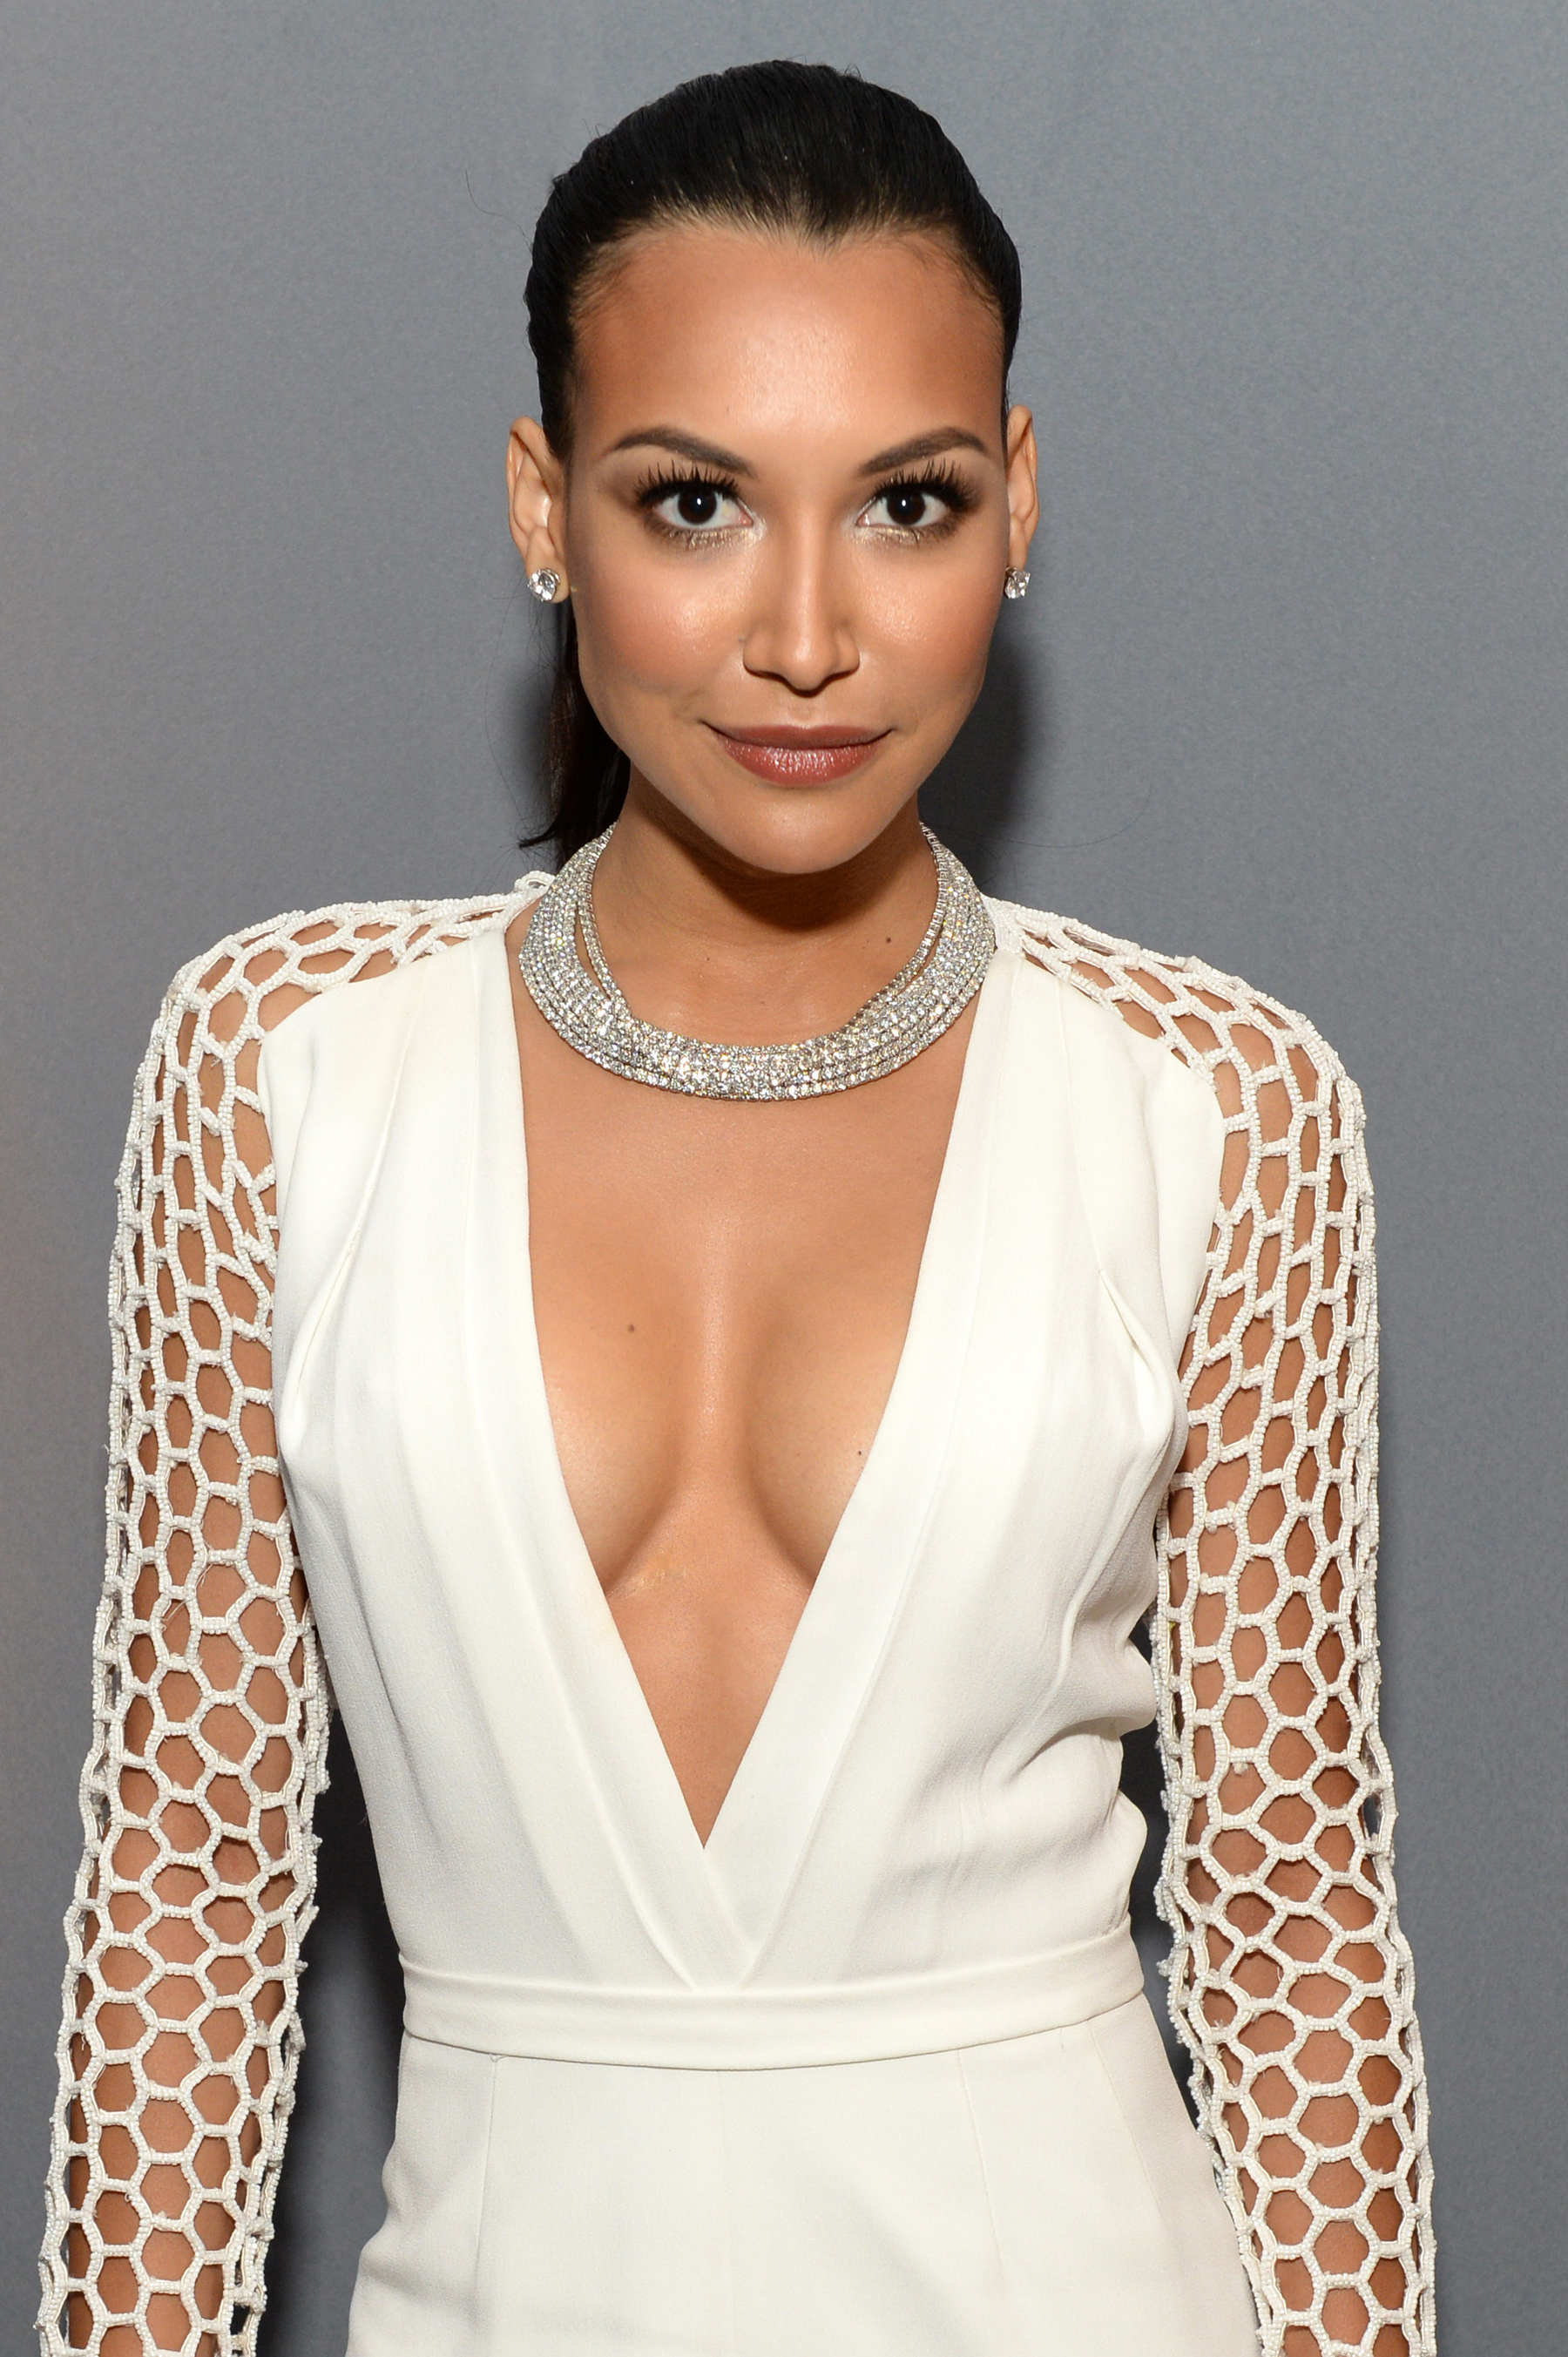 4944919dd7c Naya Rivera   Glee  Bad Girl Aims for the Pop Charts – Rolling Stone